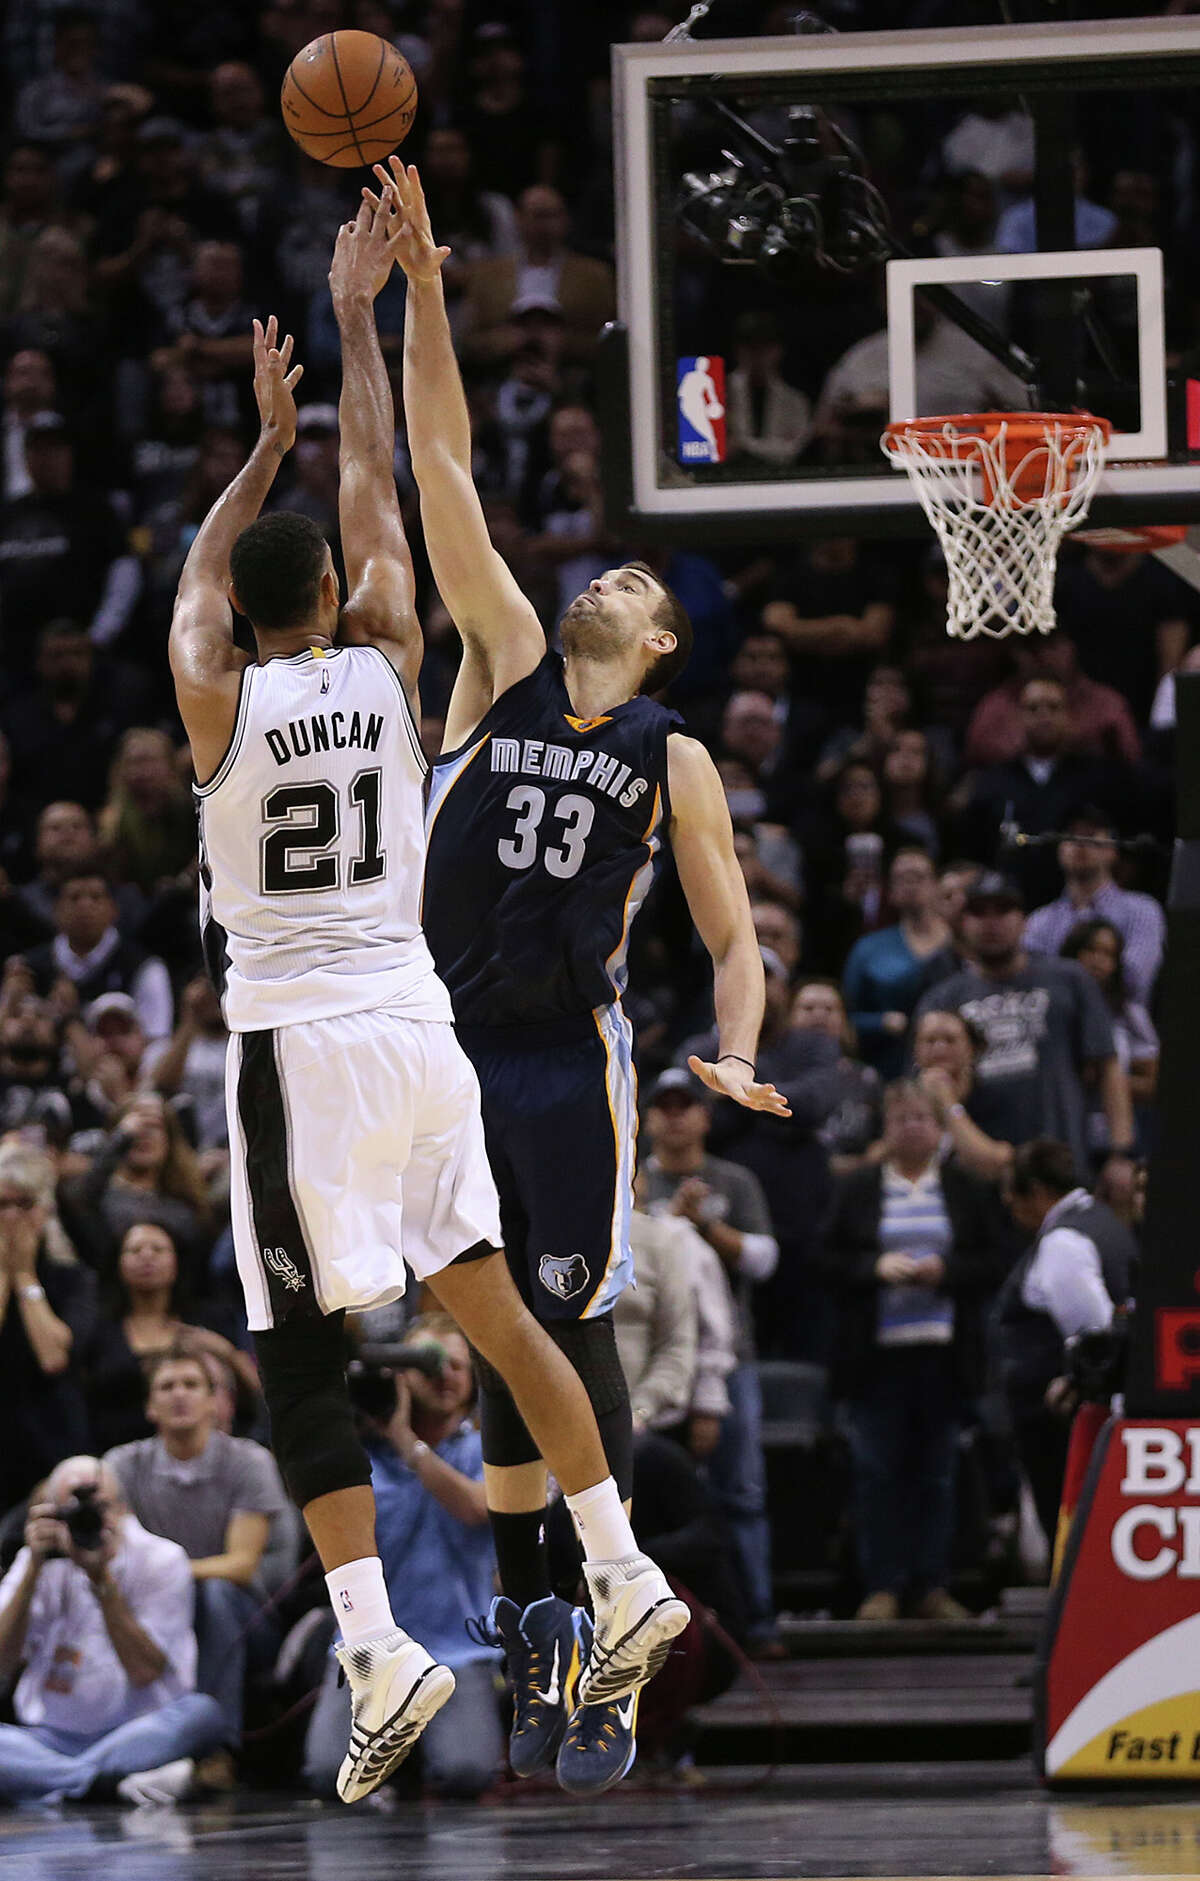 Tim Duncan shoots over Marc Gasol to tie the game and sent it to triple overtime.